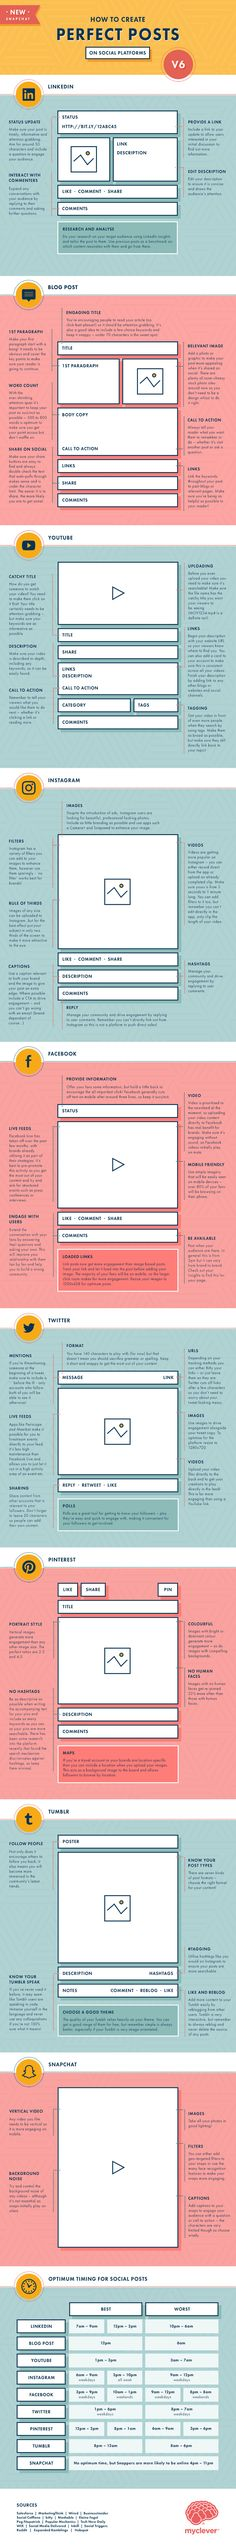 Social Media Marketing: Create Perfect Social Media Posts with the tips on this Infographic!